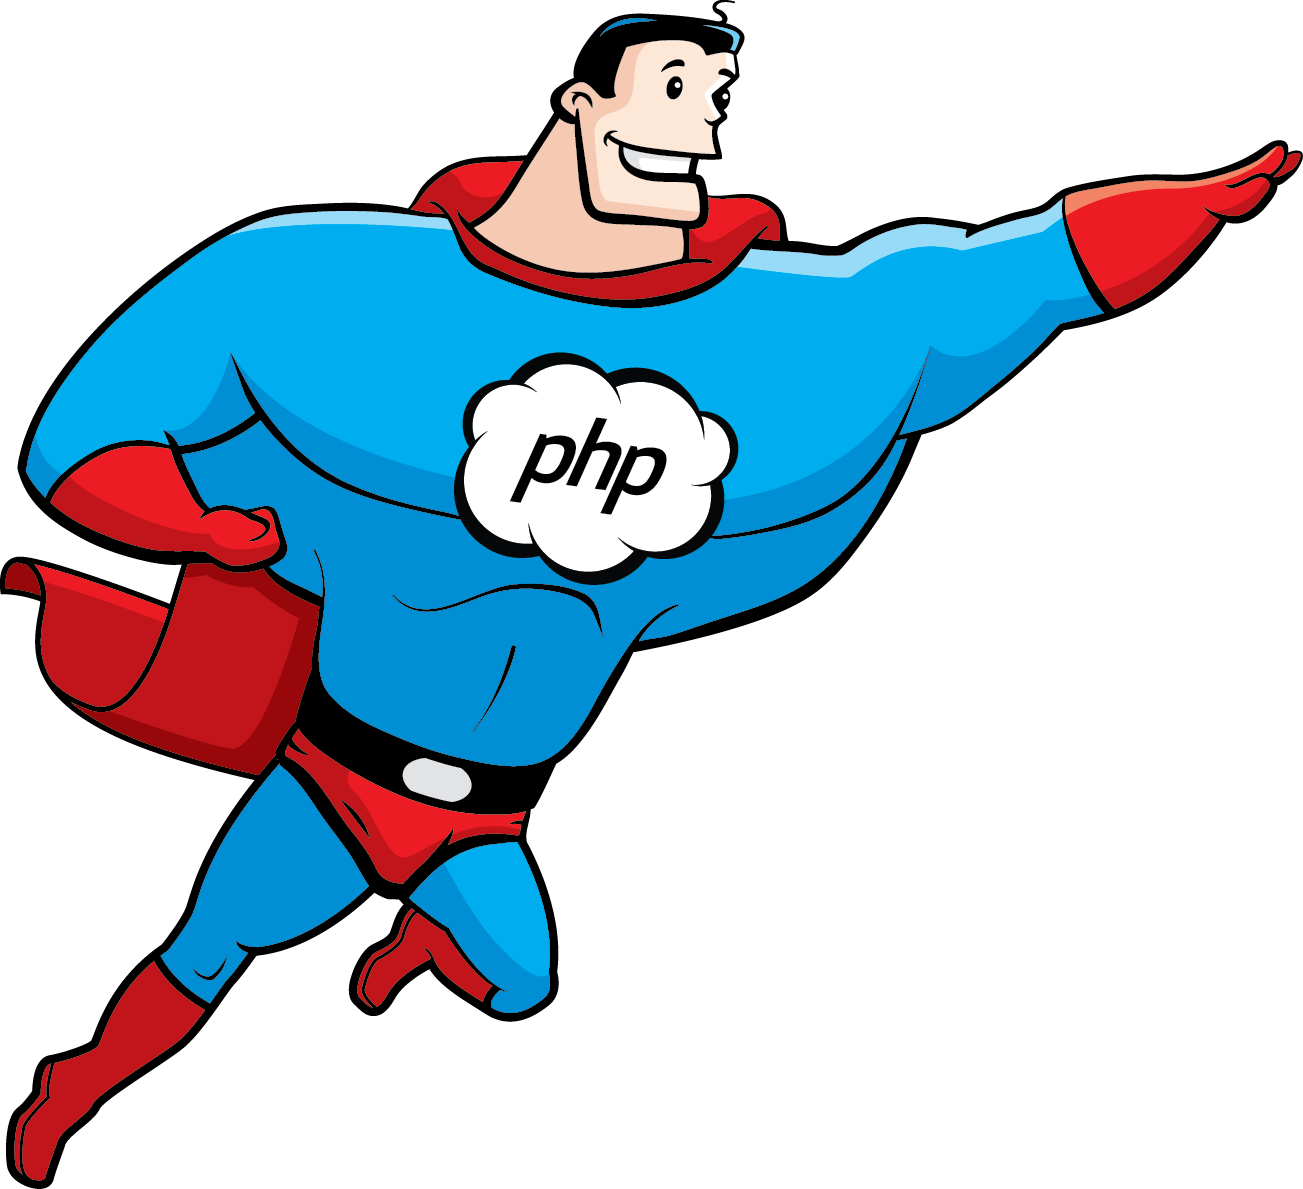 Superhero transparent. Png images pluspng and